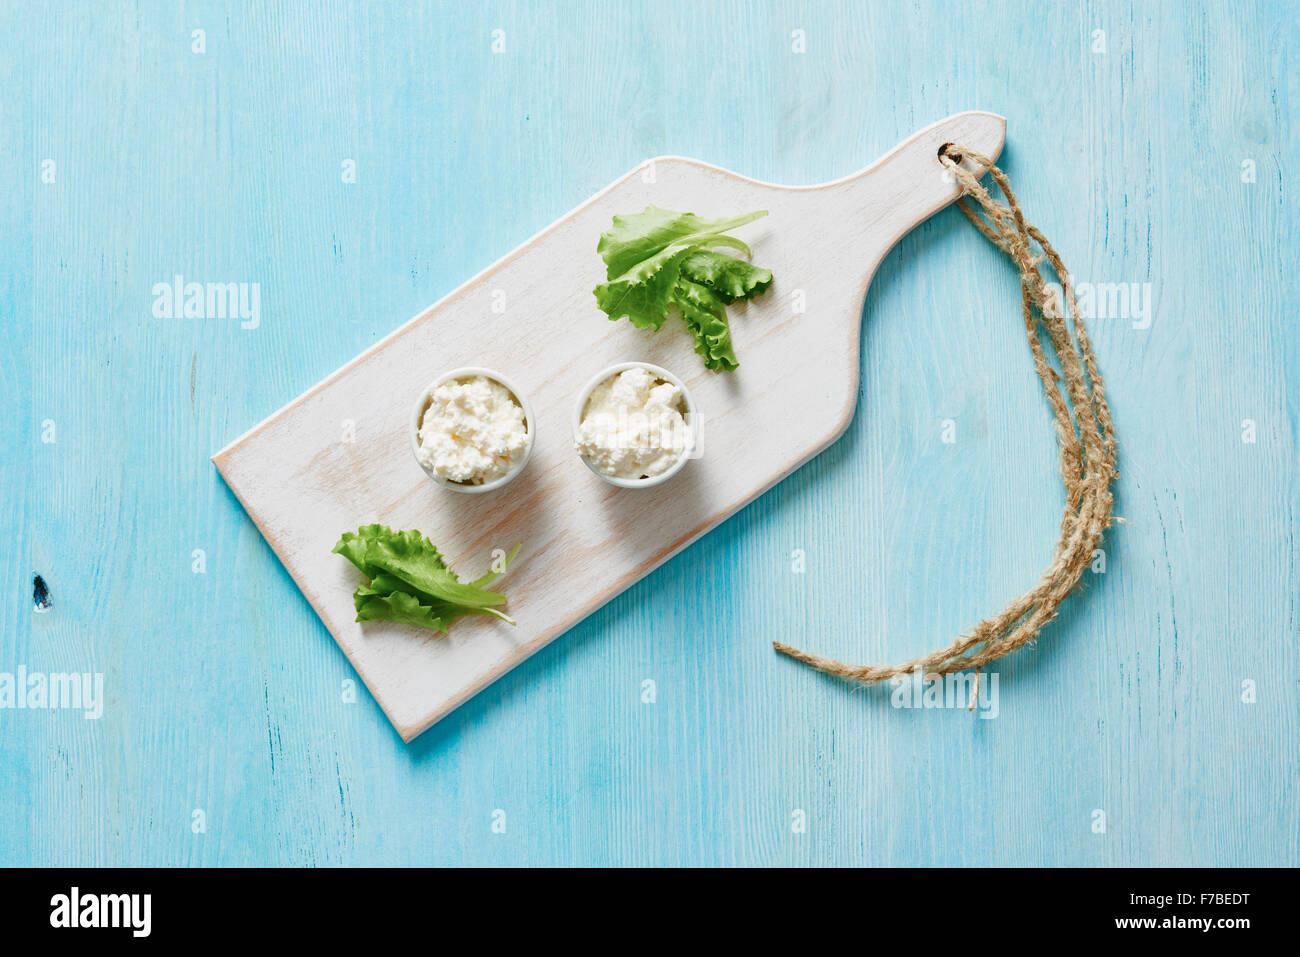 Cottage cheese in two white bowls on blue wooden table and salad - Stock Image